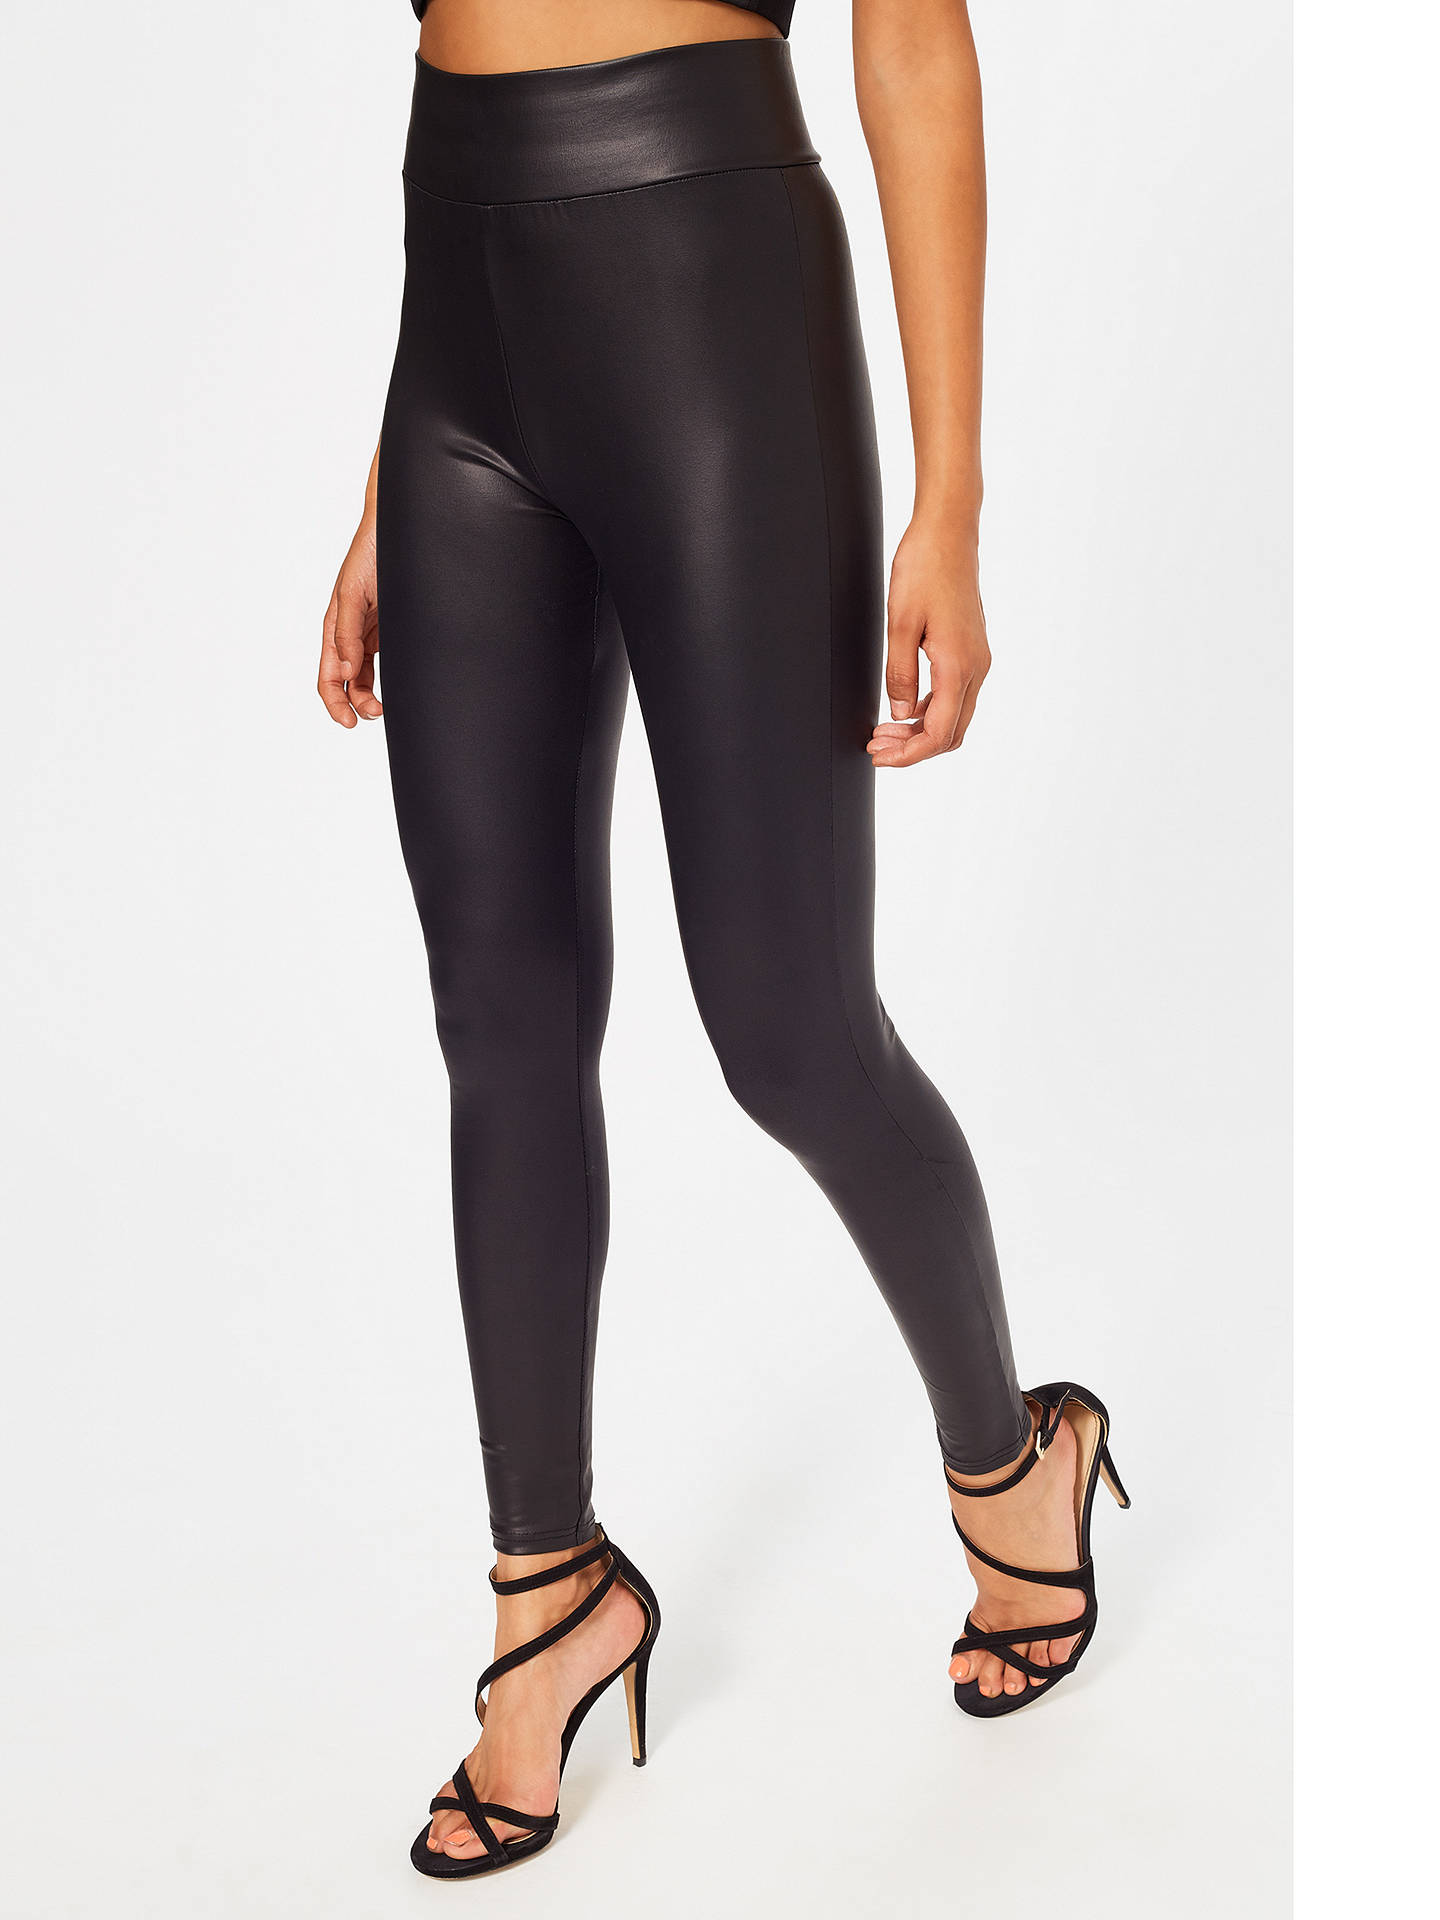 bdef37314e504d ... Buy Miss Selfridge Wet Look Leggings, Black, 6 Online at johnlewis.com  ...